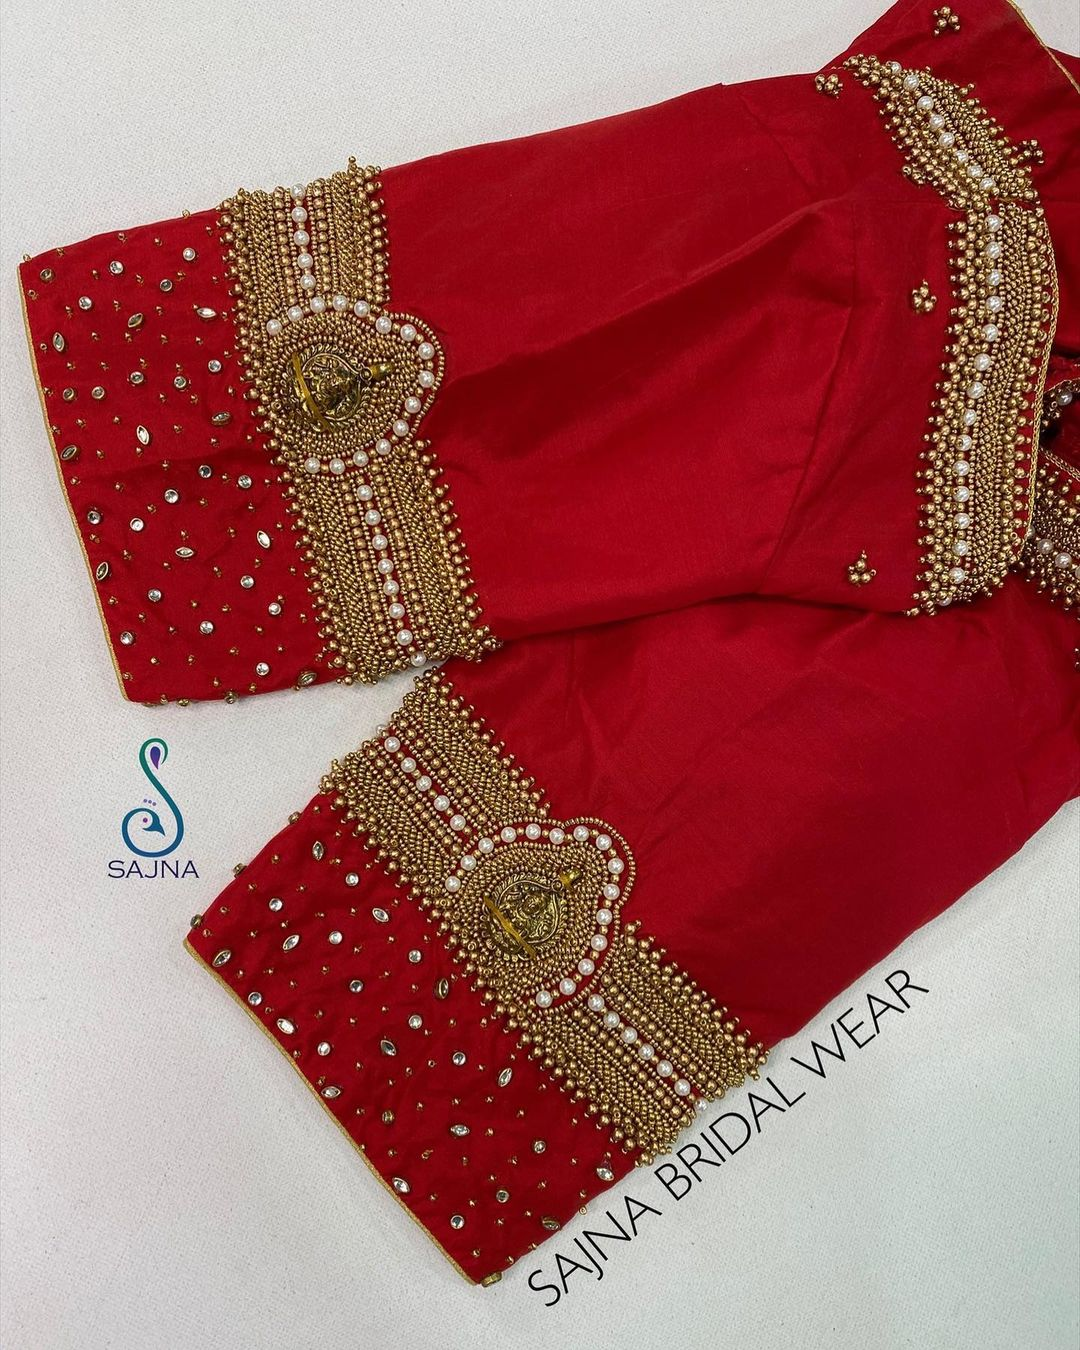 Stunning red color designer blouse with Lakshmi devi motif hand embroidery work on sleeves.  | new fashion blouse design | blouse katne ka design | velvet saree blouse | 2020-12-03